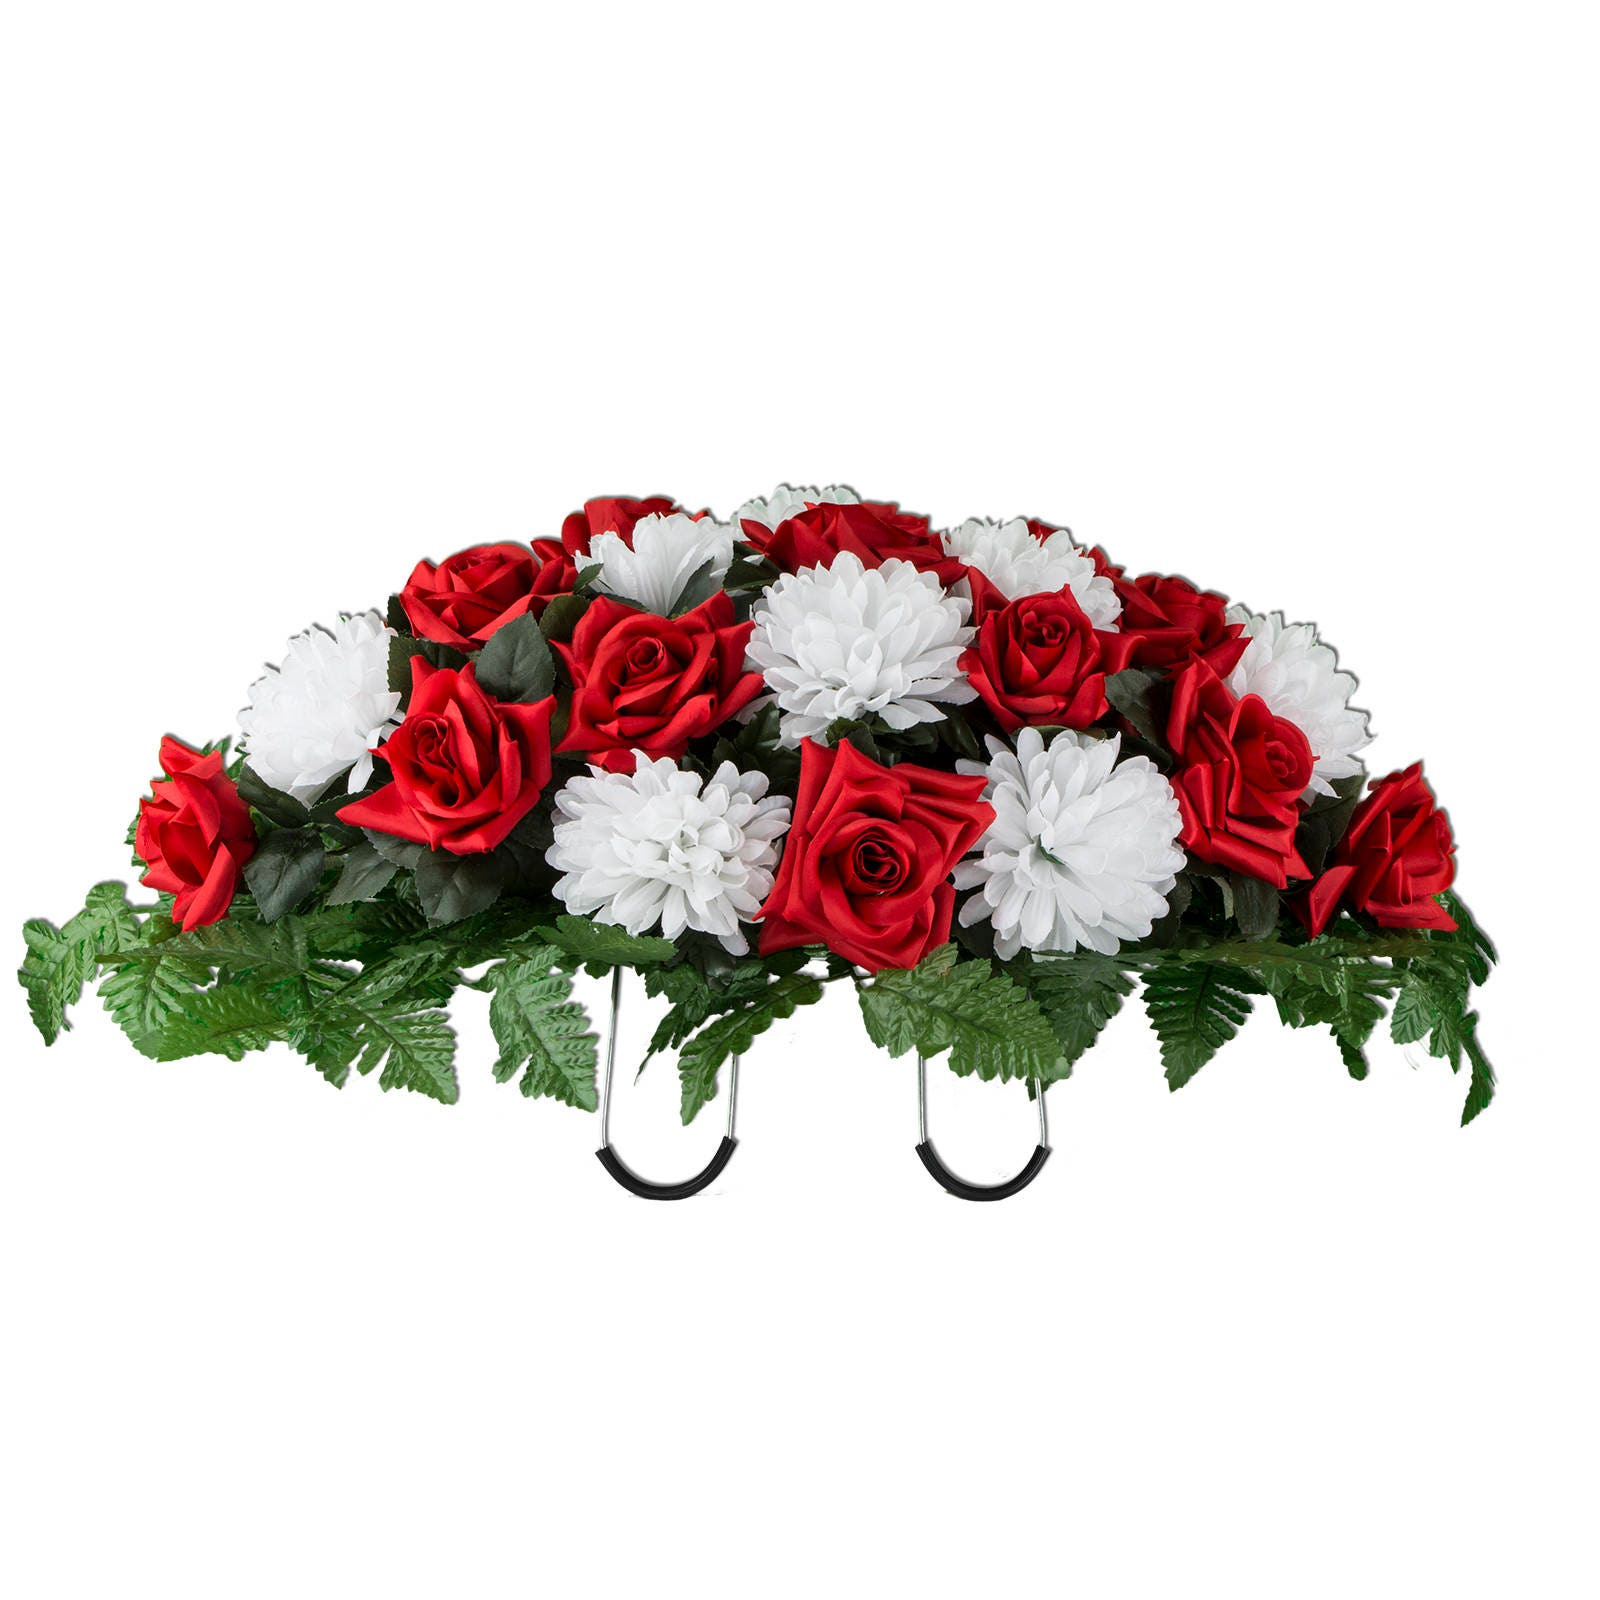 Red And White Cemetery Saddle Cemetery Flowers Silk Flower Etsy